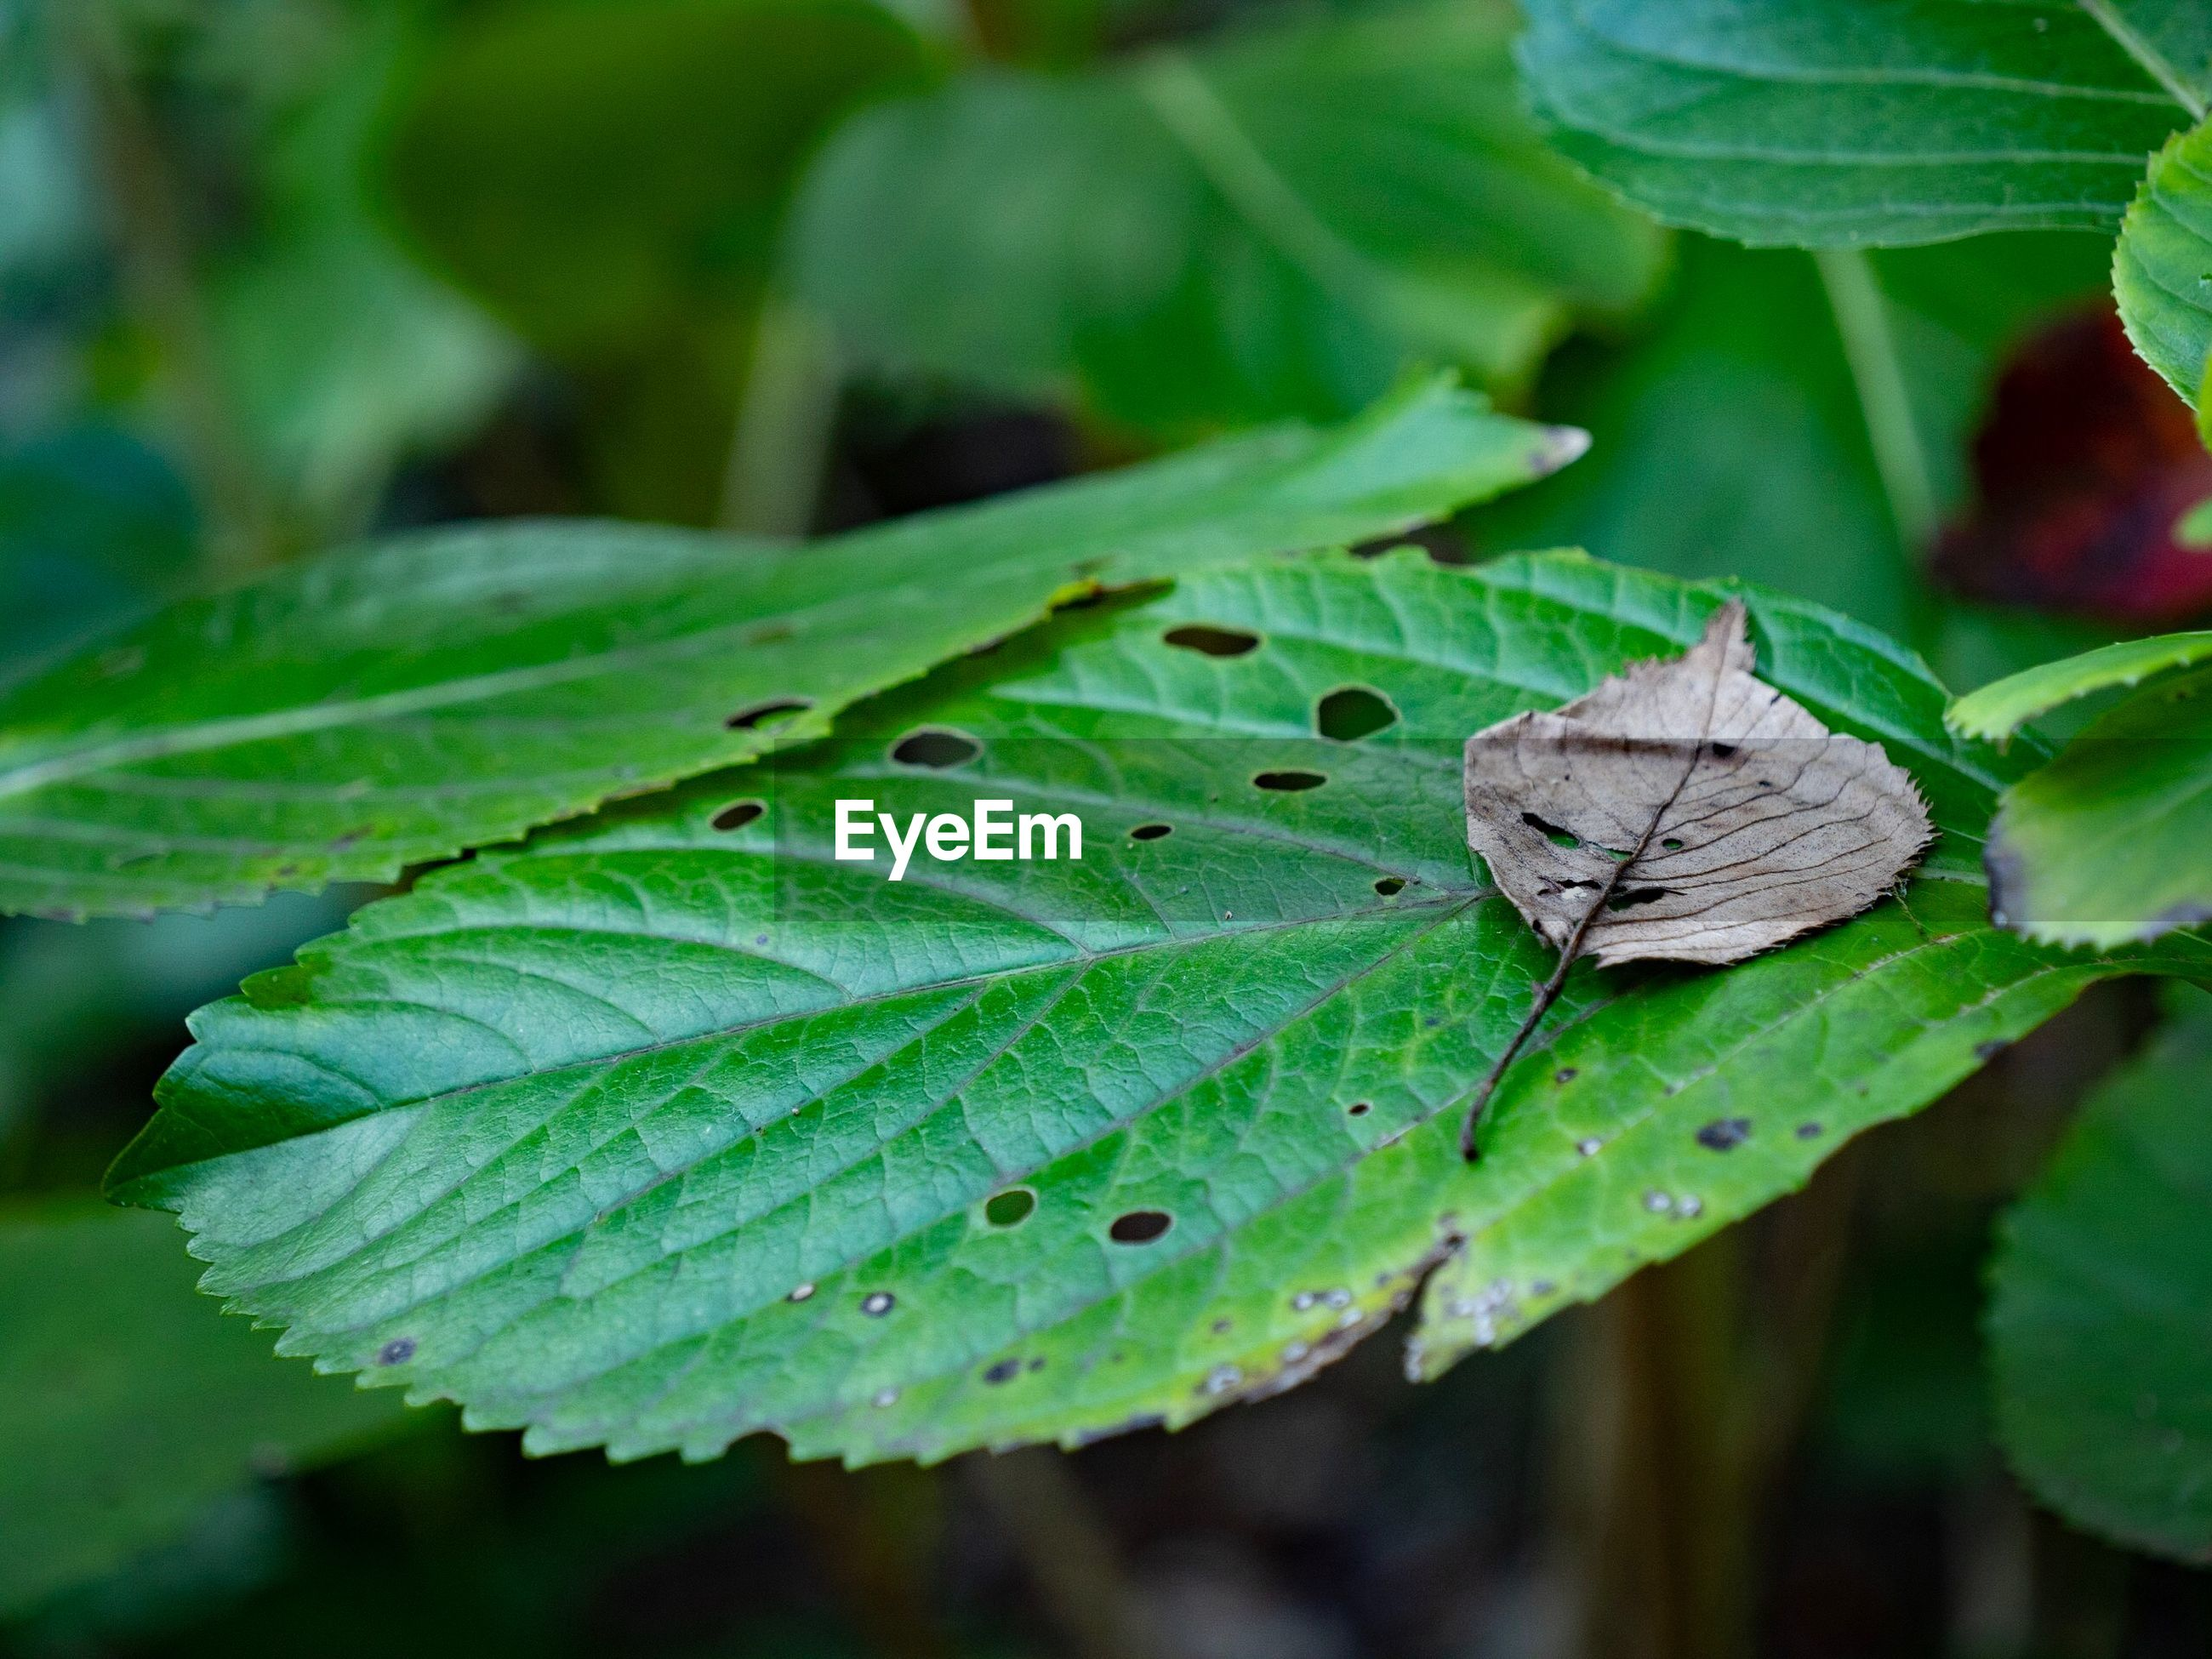 CLOSE-UP OF BUTTERFLY ON PLANT LEAVES